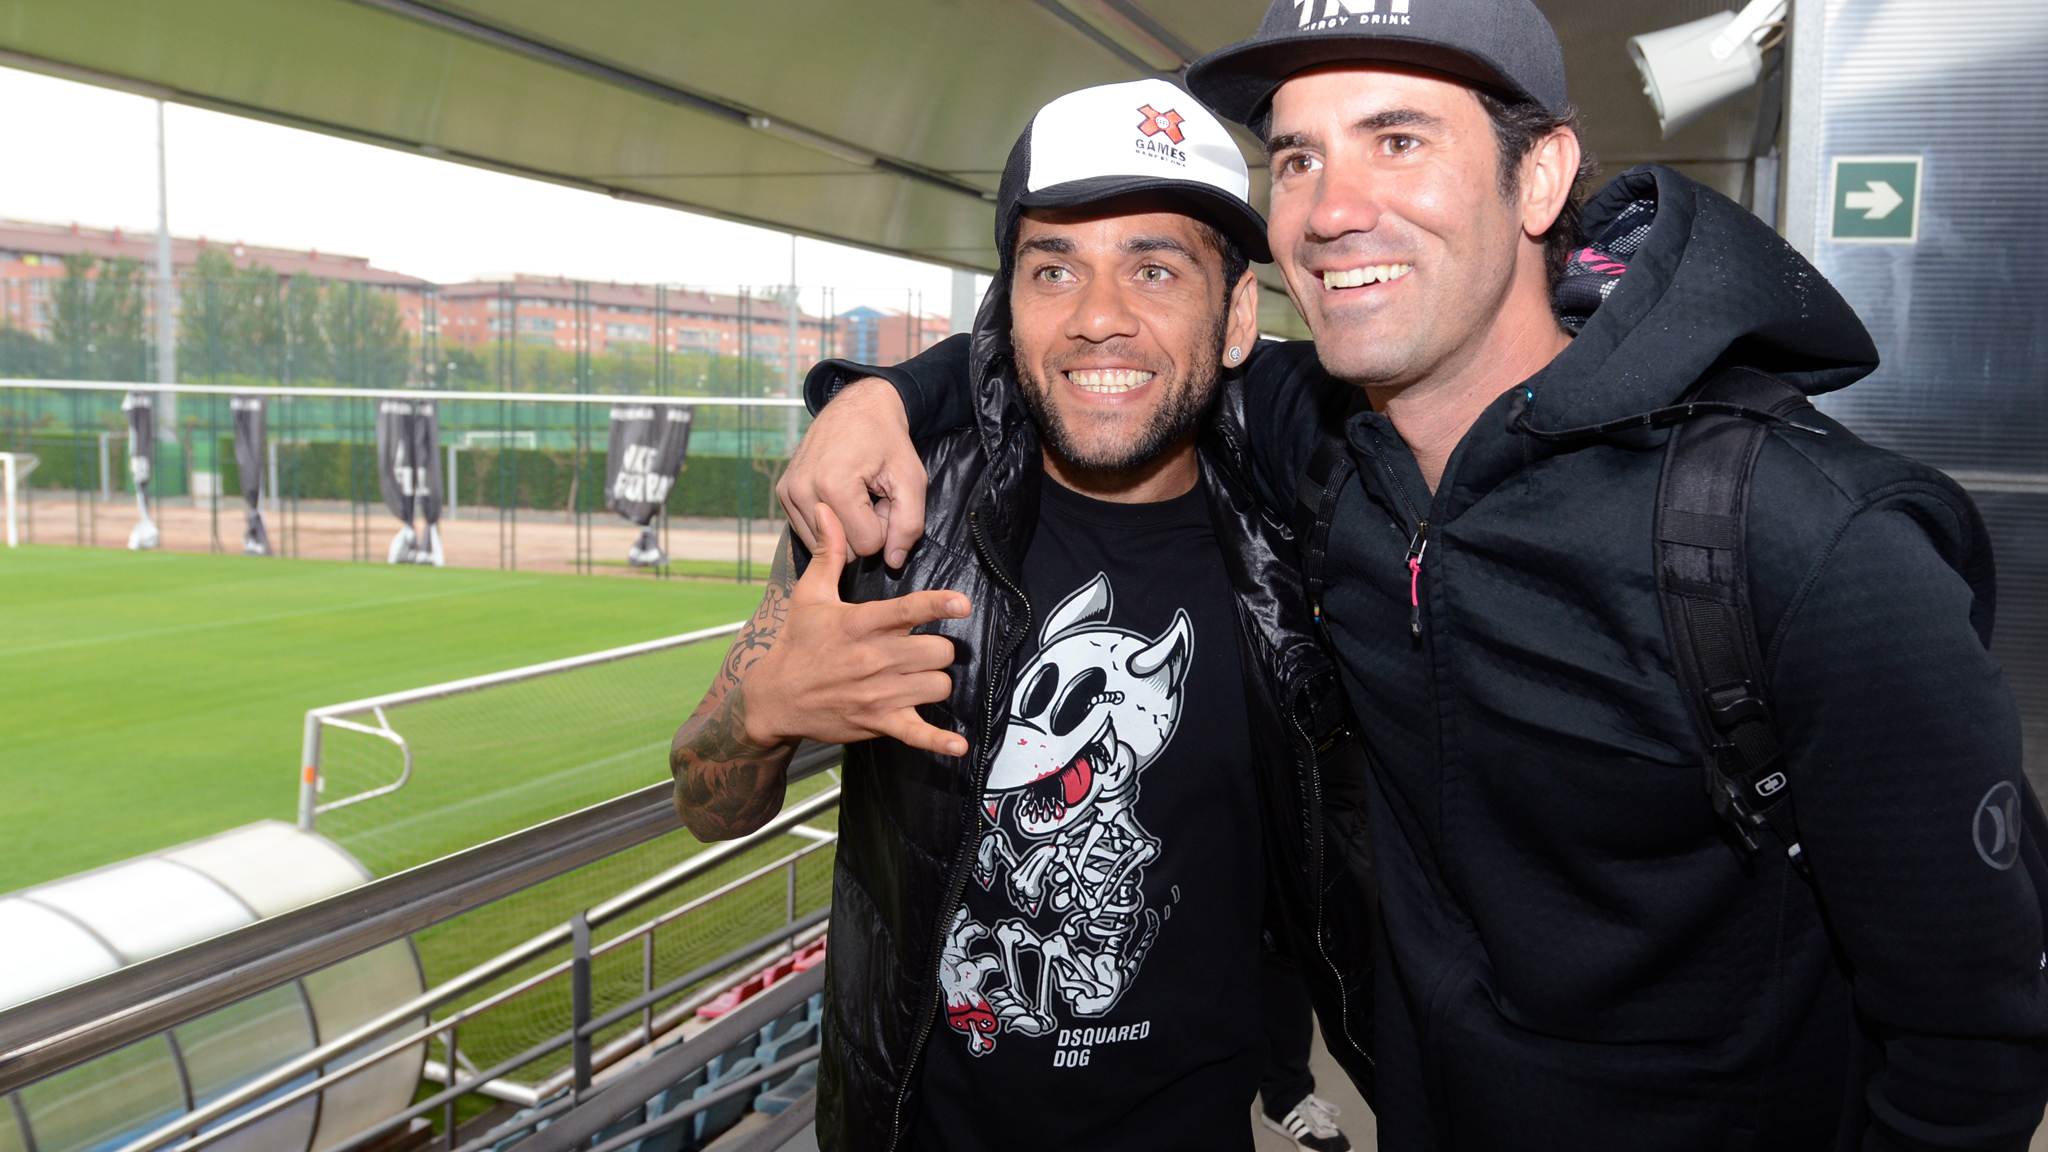 Dani Alves, Bob Burnquist